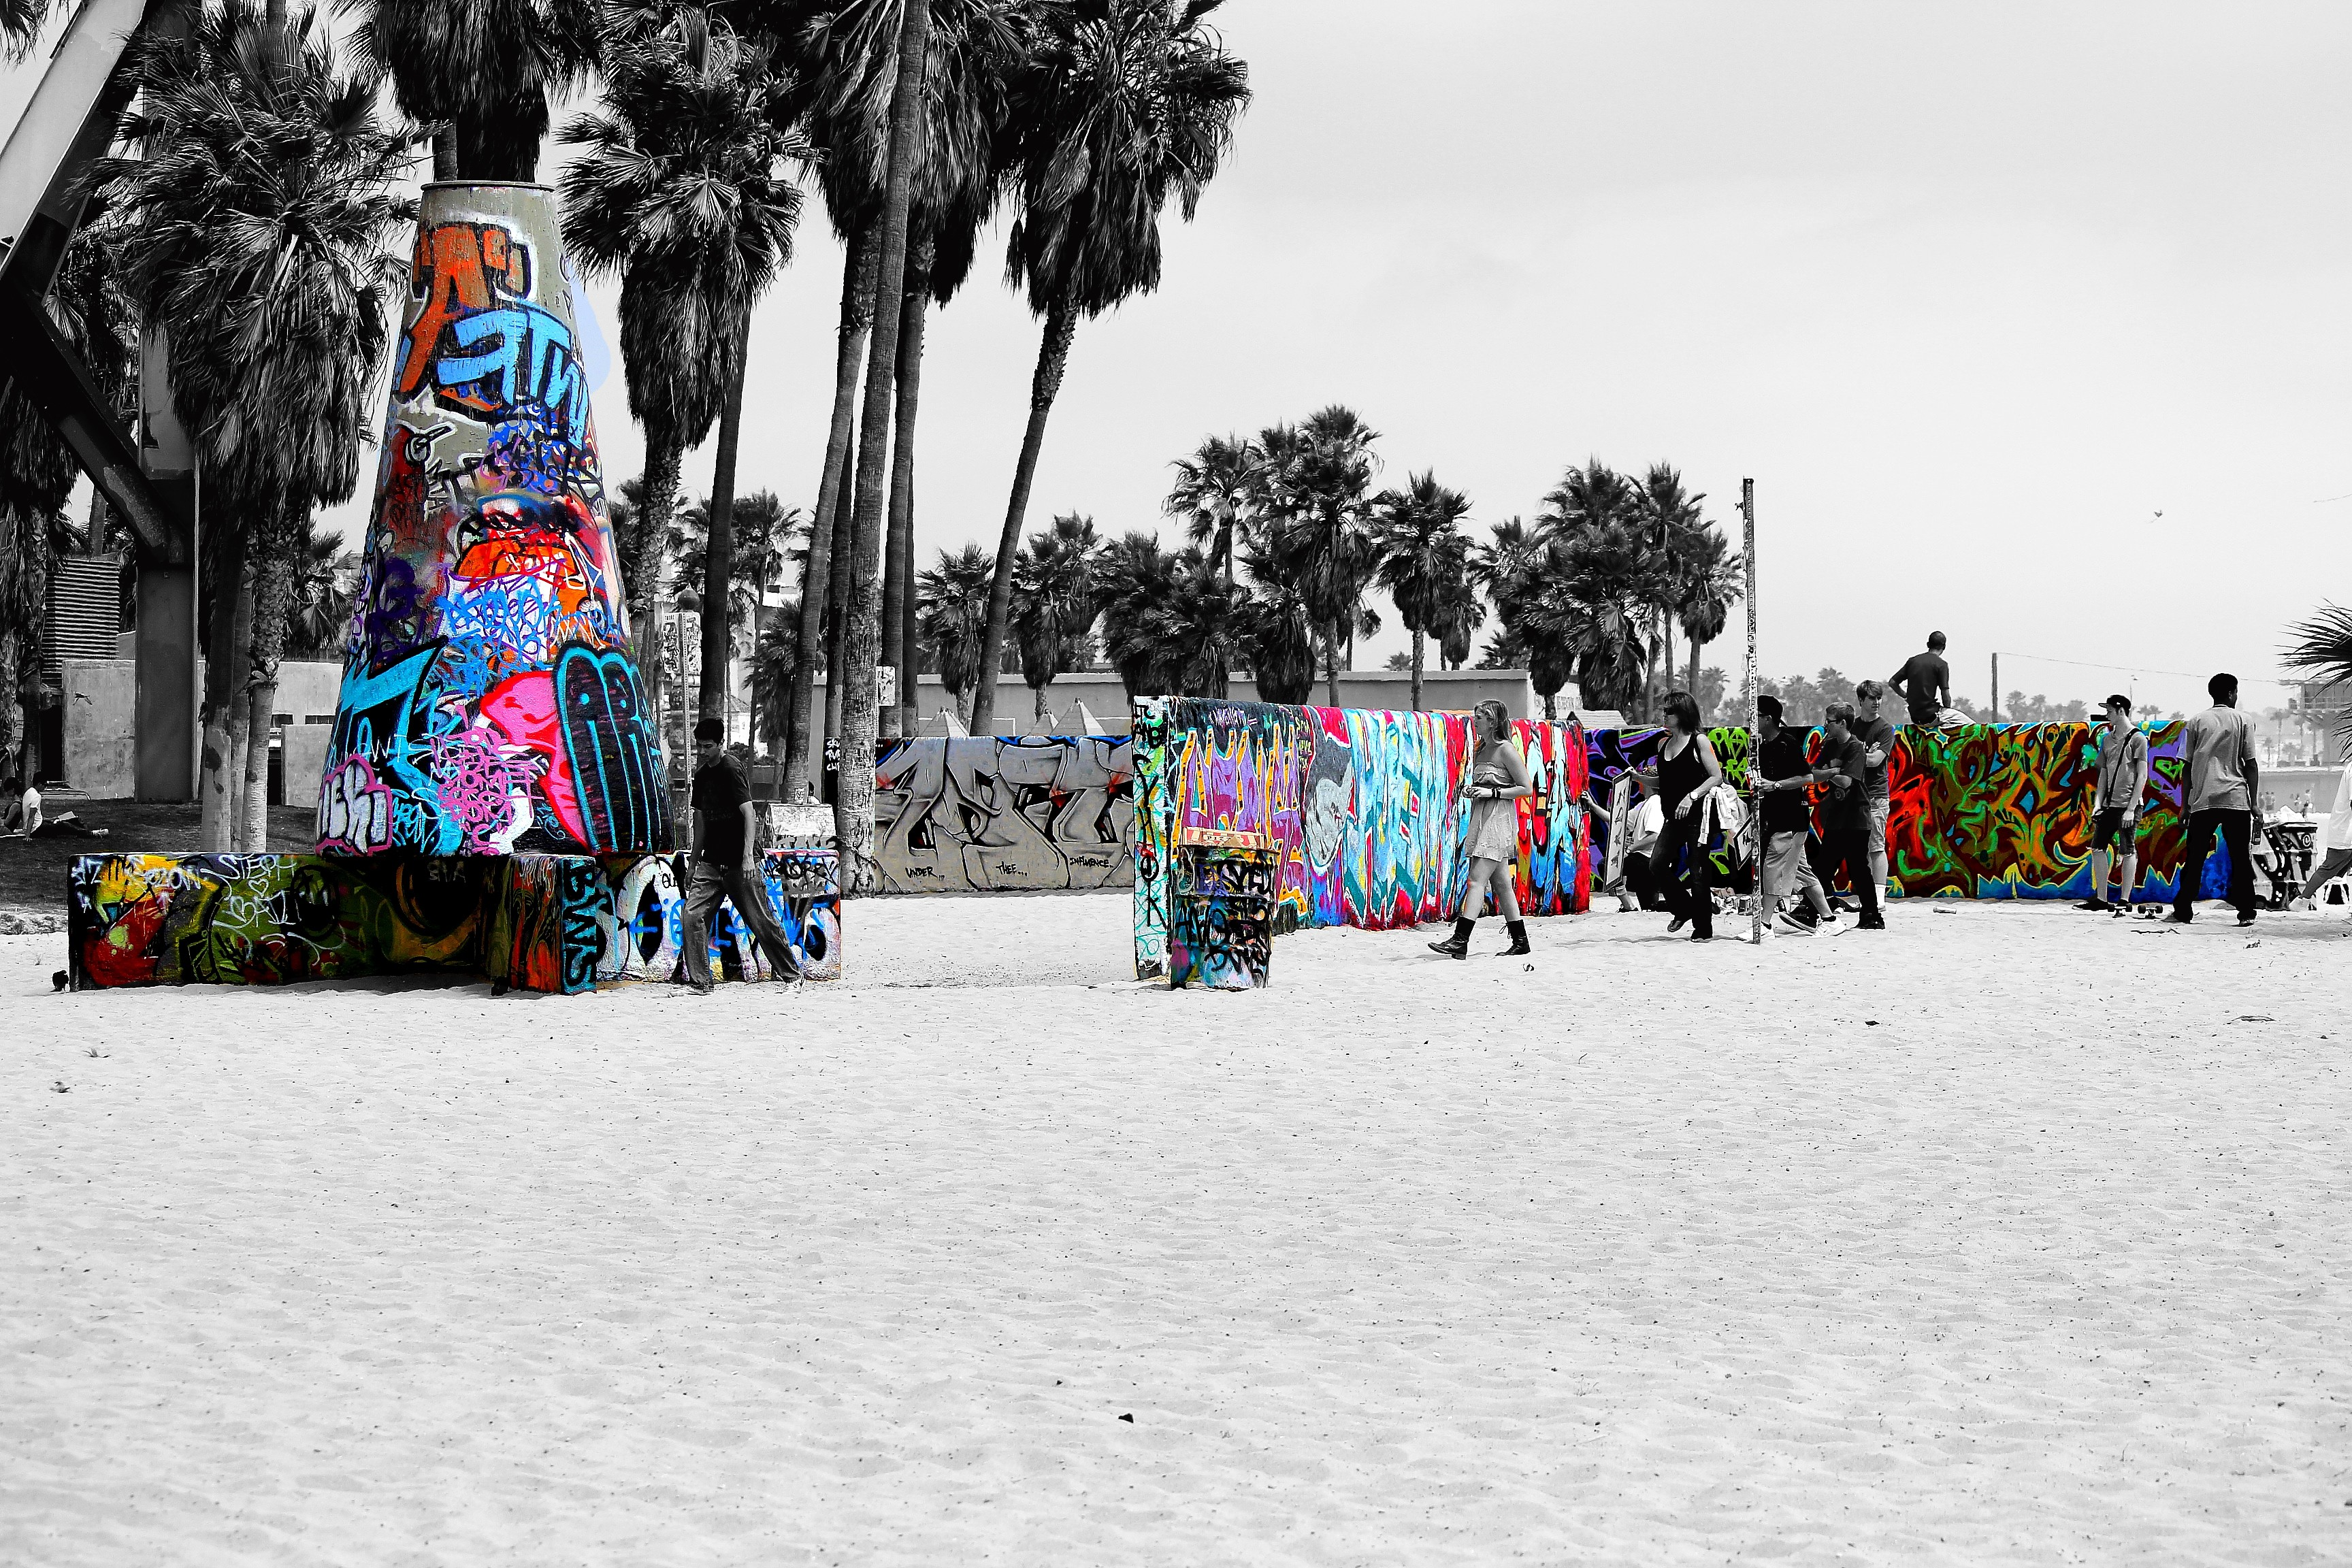 Venice Beach Computer Wallpapers Desktop Backgrounds 3456x2304 ID 3456x2304